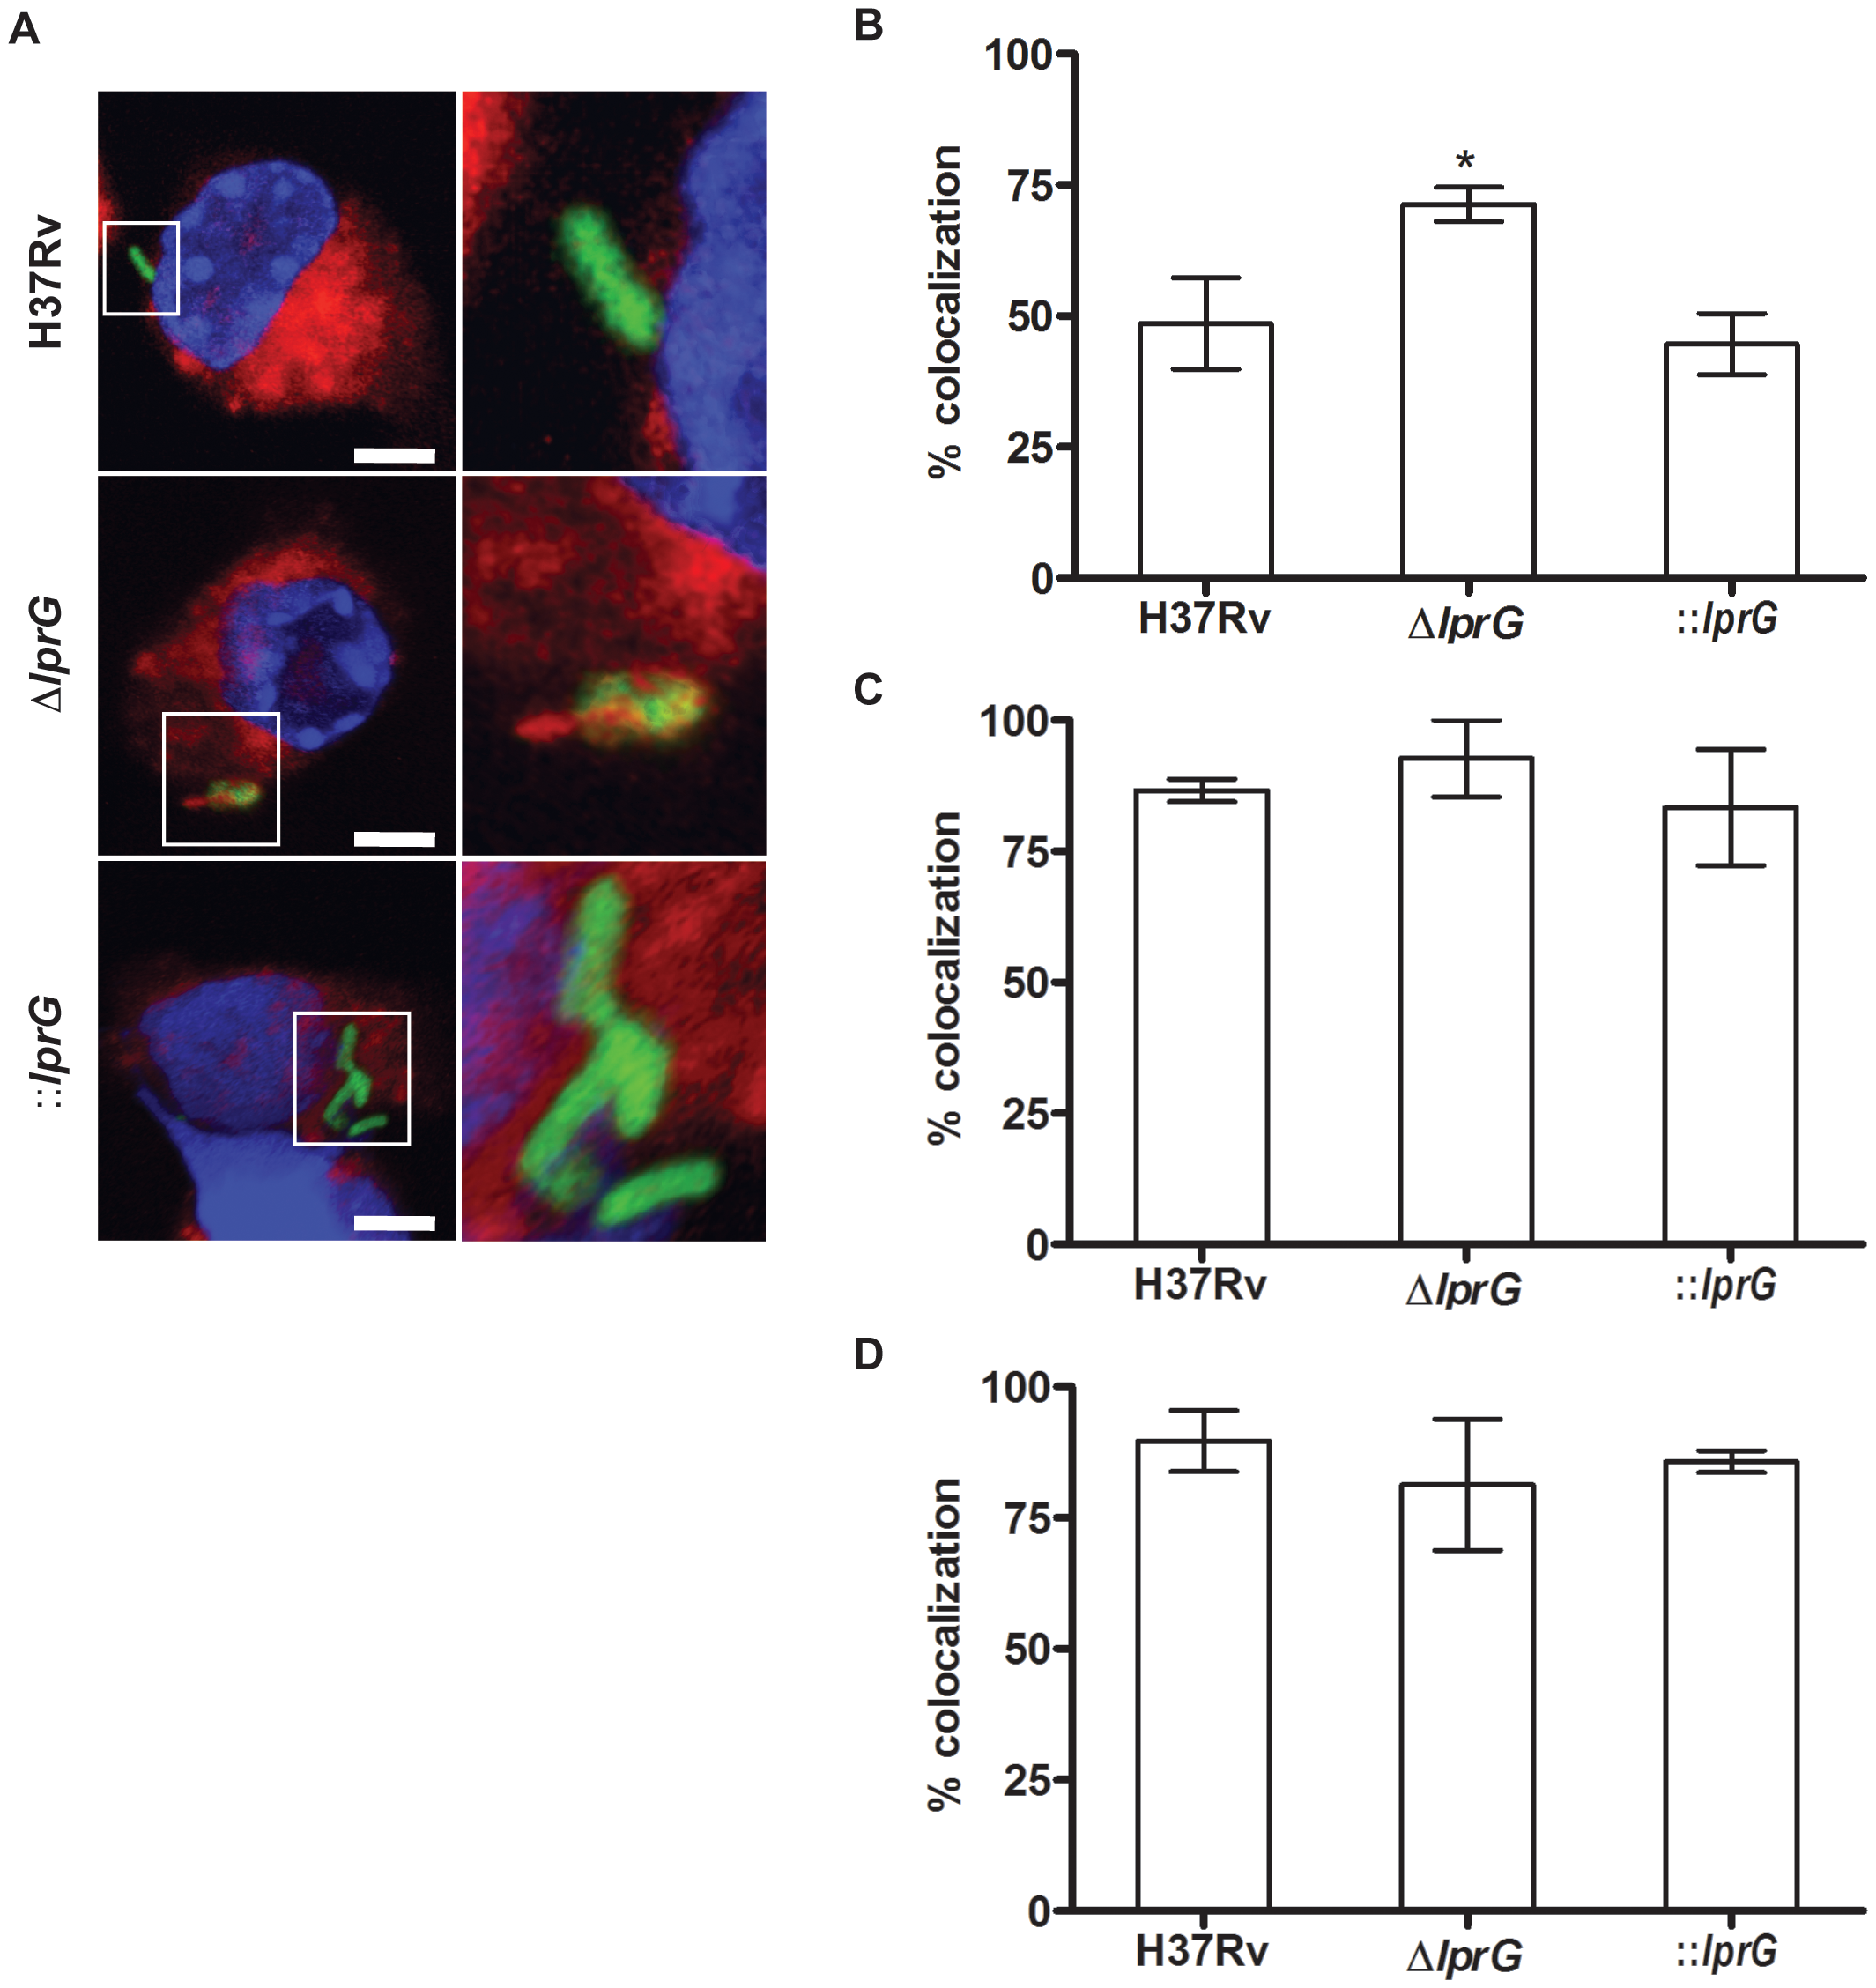 The <i>lprG</i> mutant is impaired for inhibition of Phagosome-Lysosome fusion.